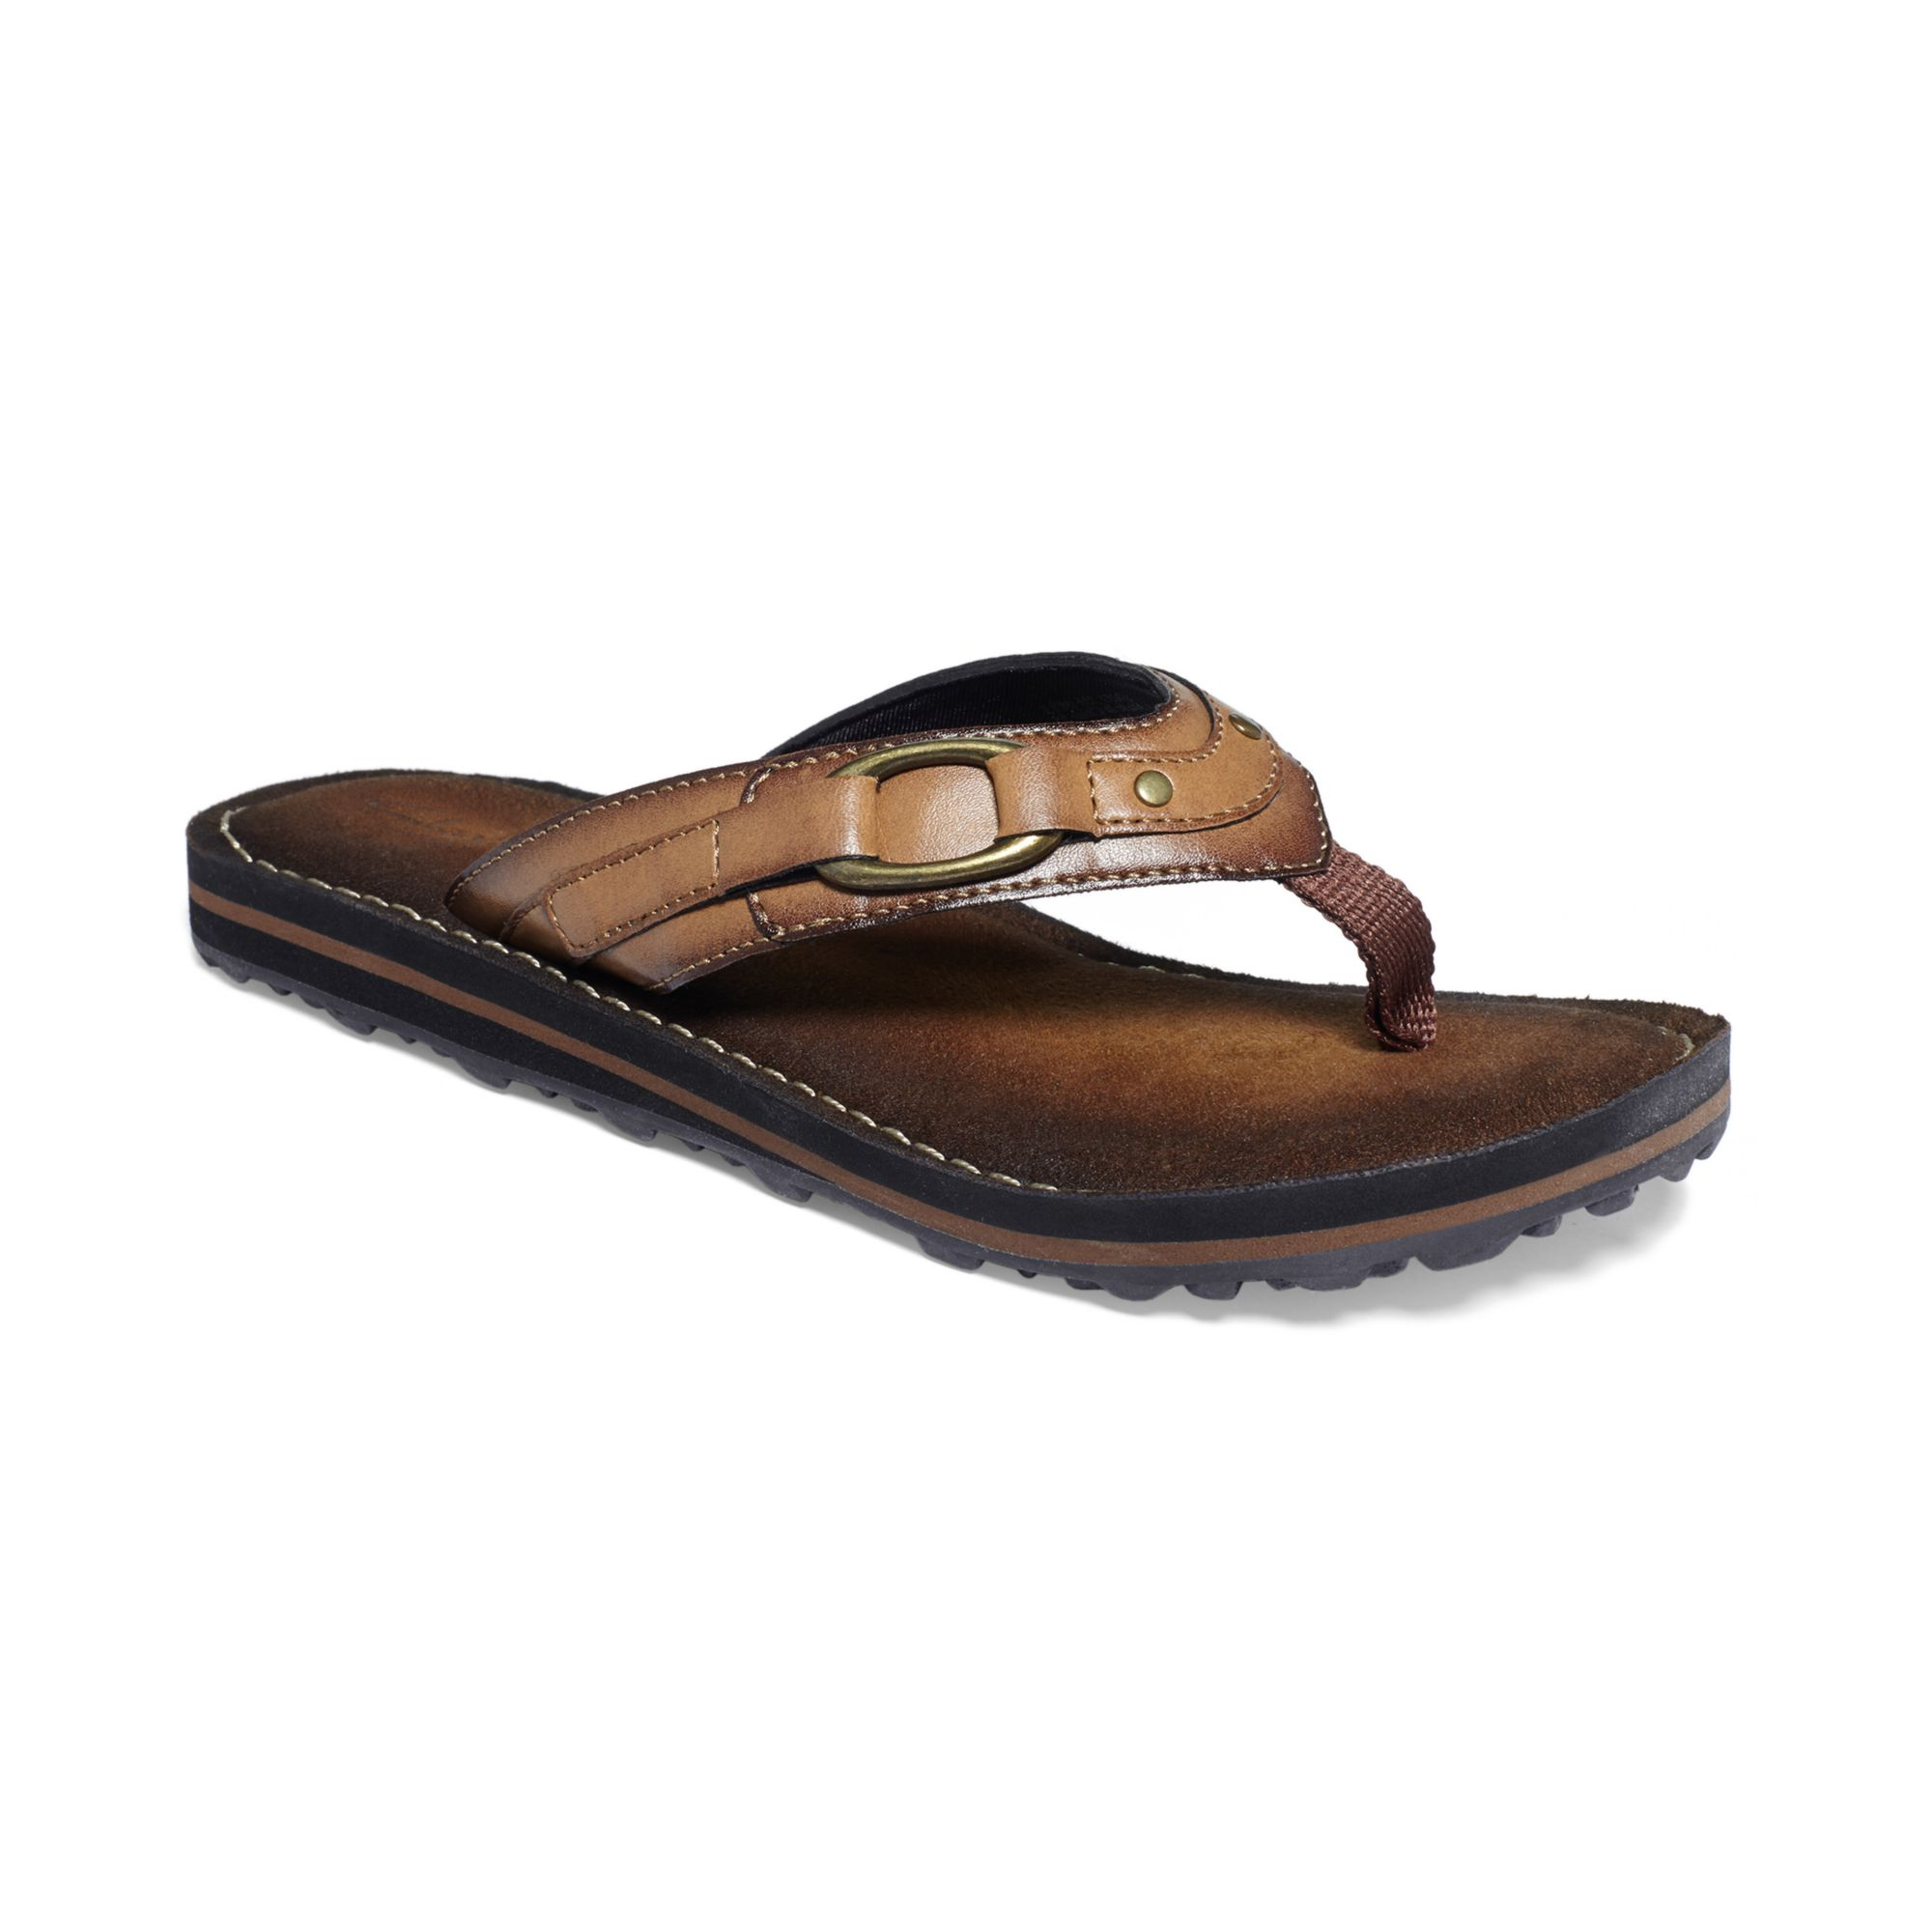 Clarks Womens Flip Abby Flip Flops in Brown (Honey)